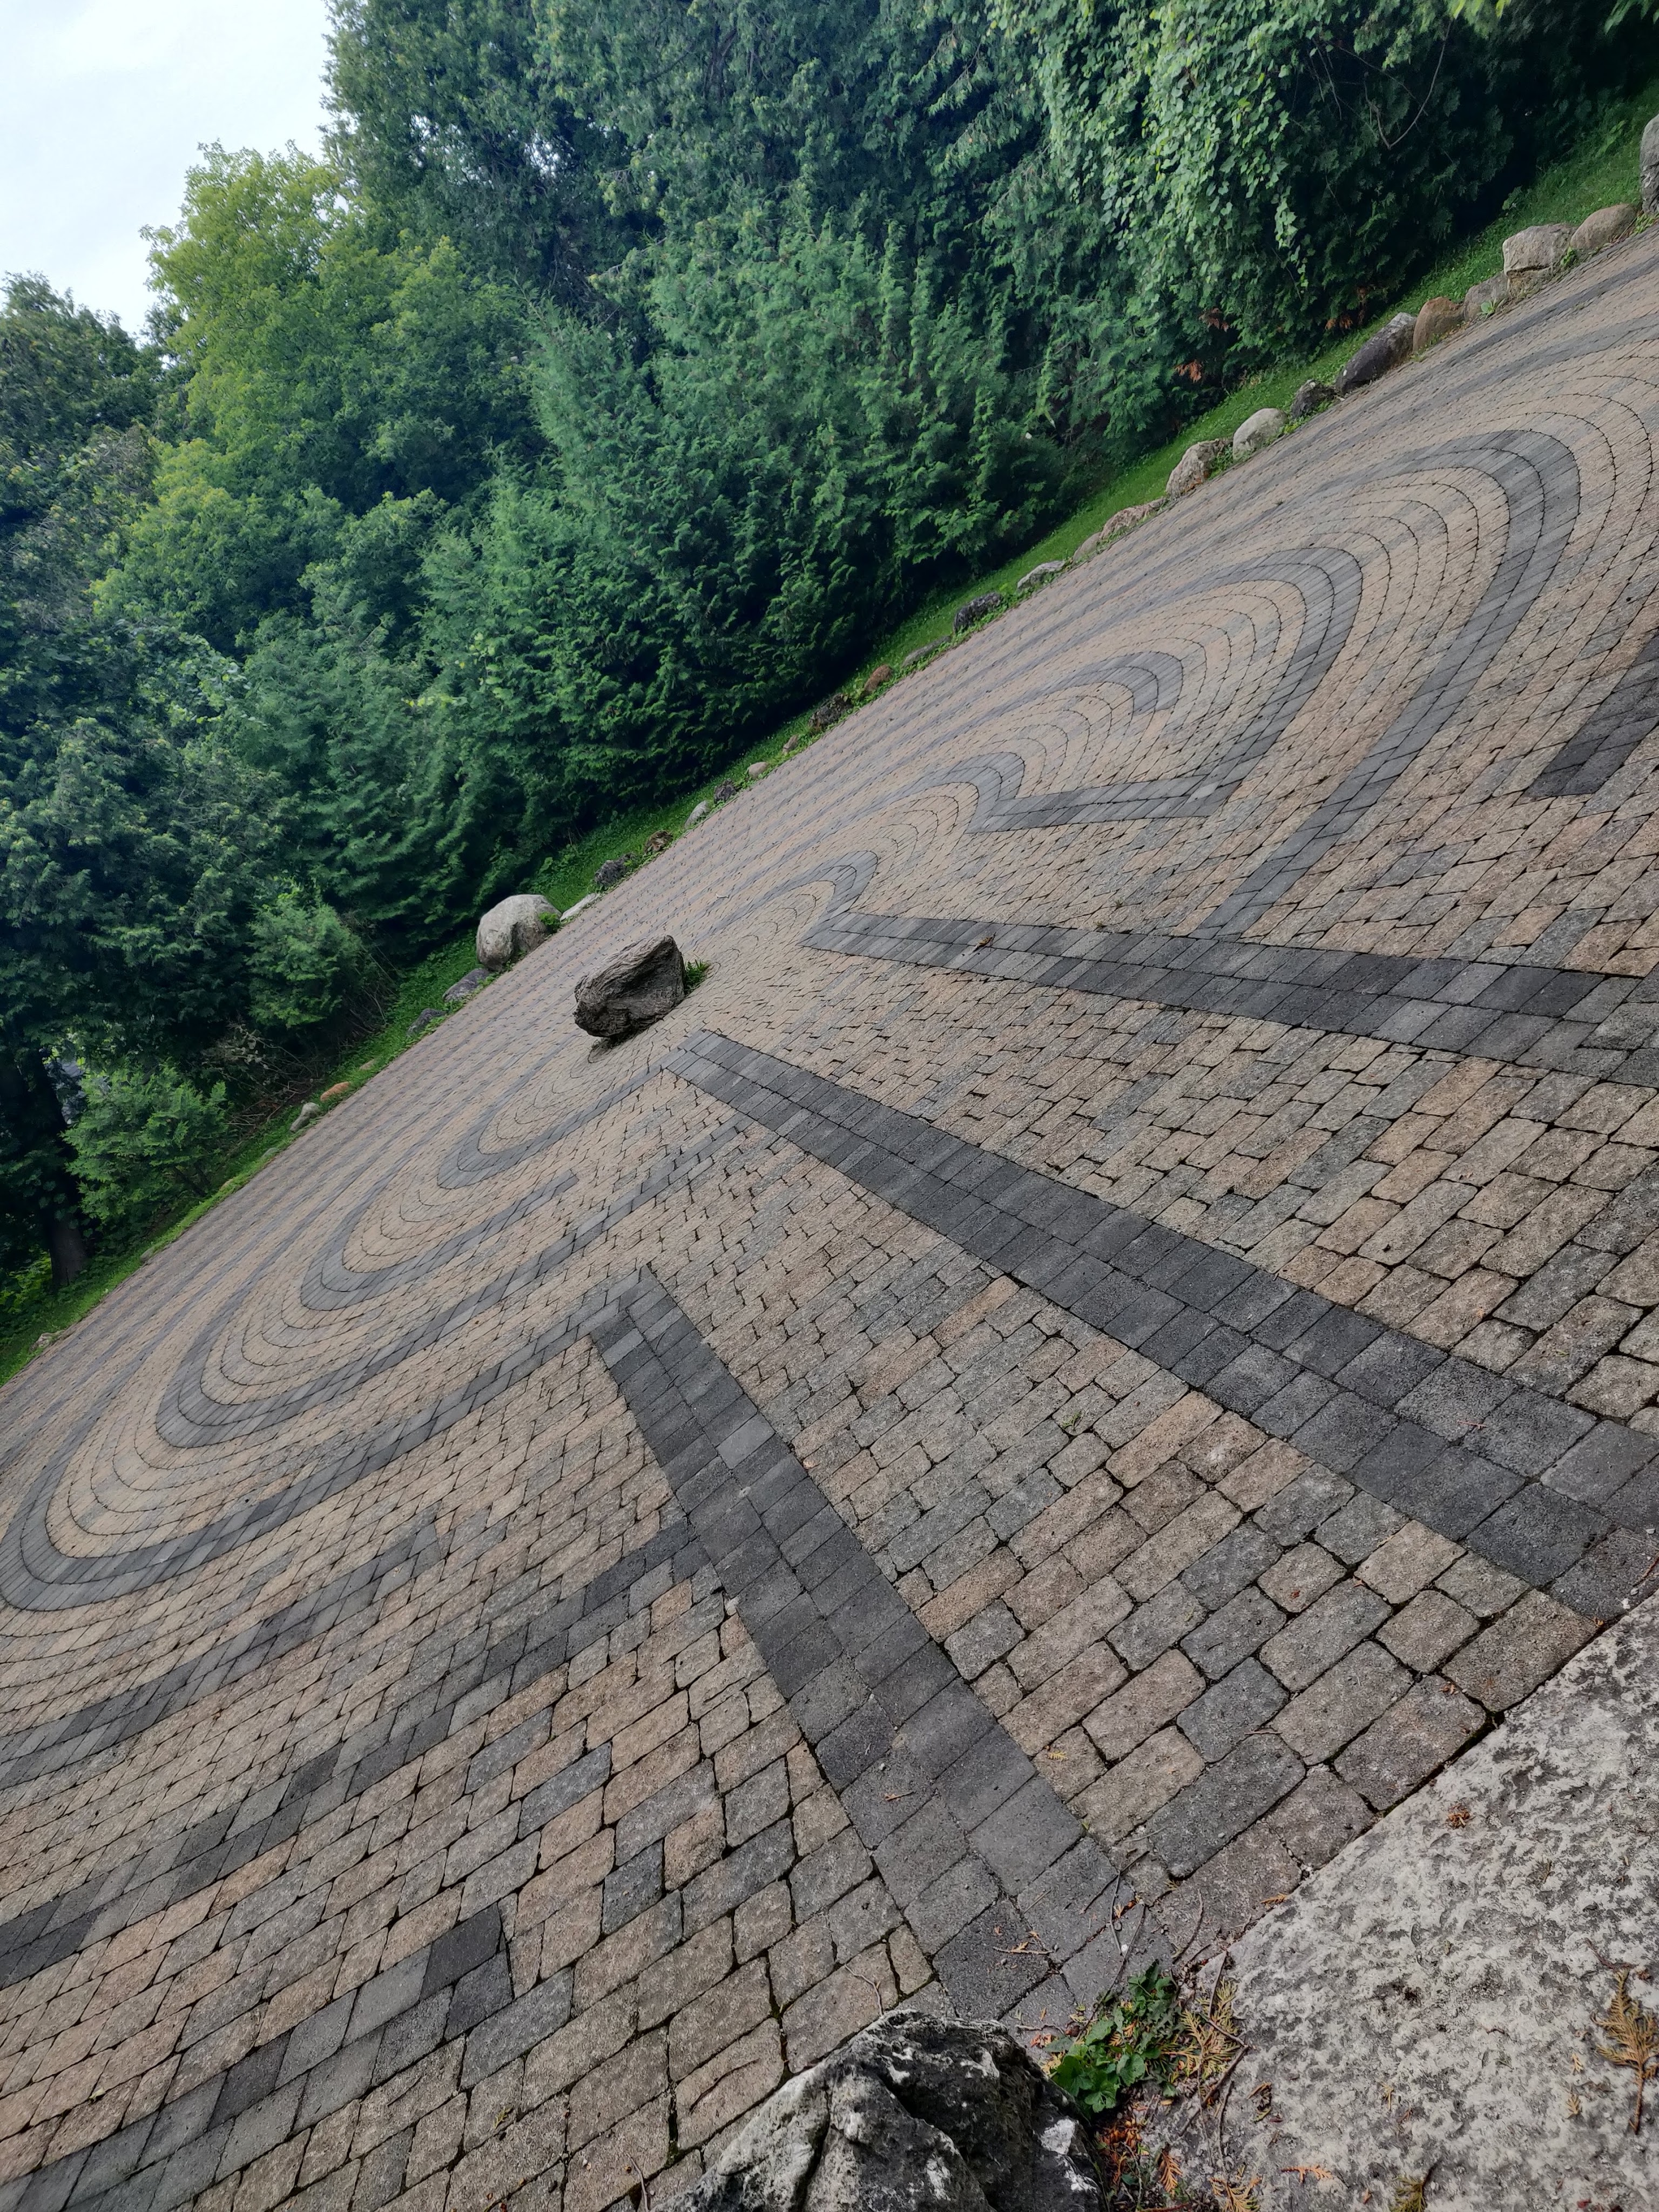 A round labyrinth constructed with cobblestones - gray for the path outline, reddy-brown for the path itself. At the center of the labyrinth there is a small boulder. Beyond the edges of the labyrinth there are cedar trees, tightly planted to form a hedge.